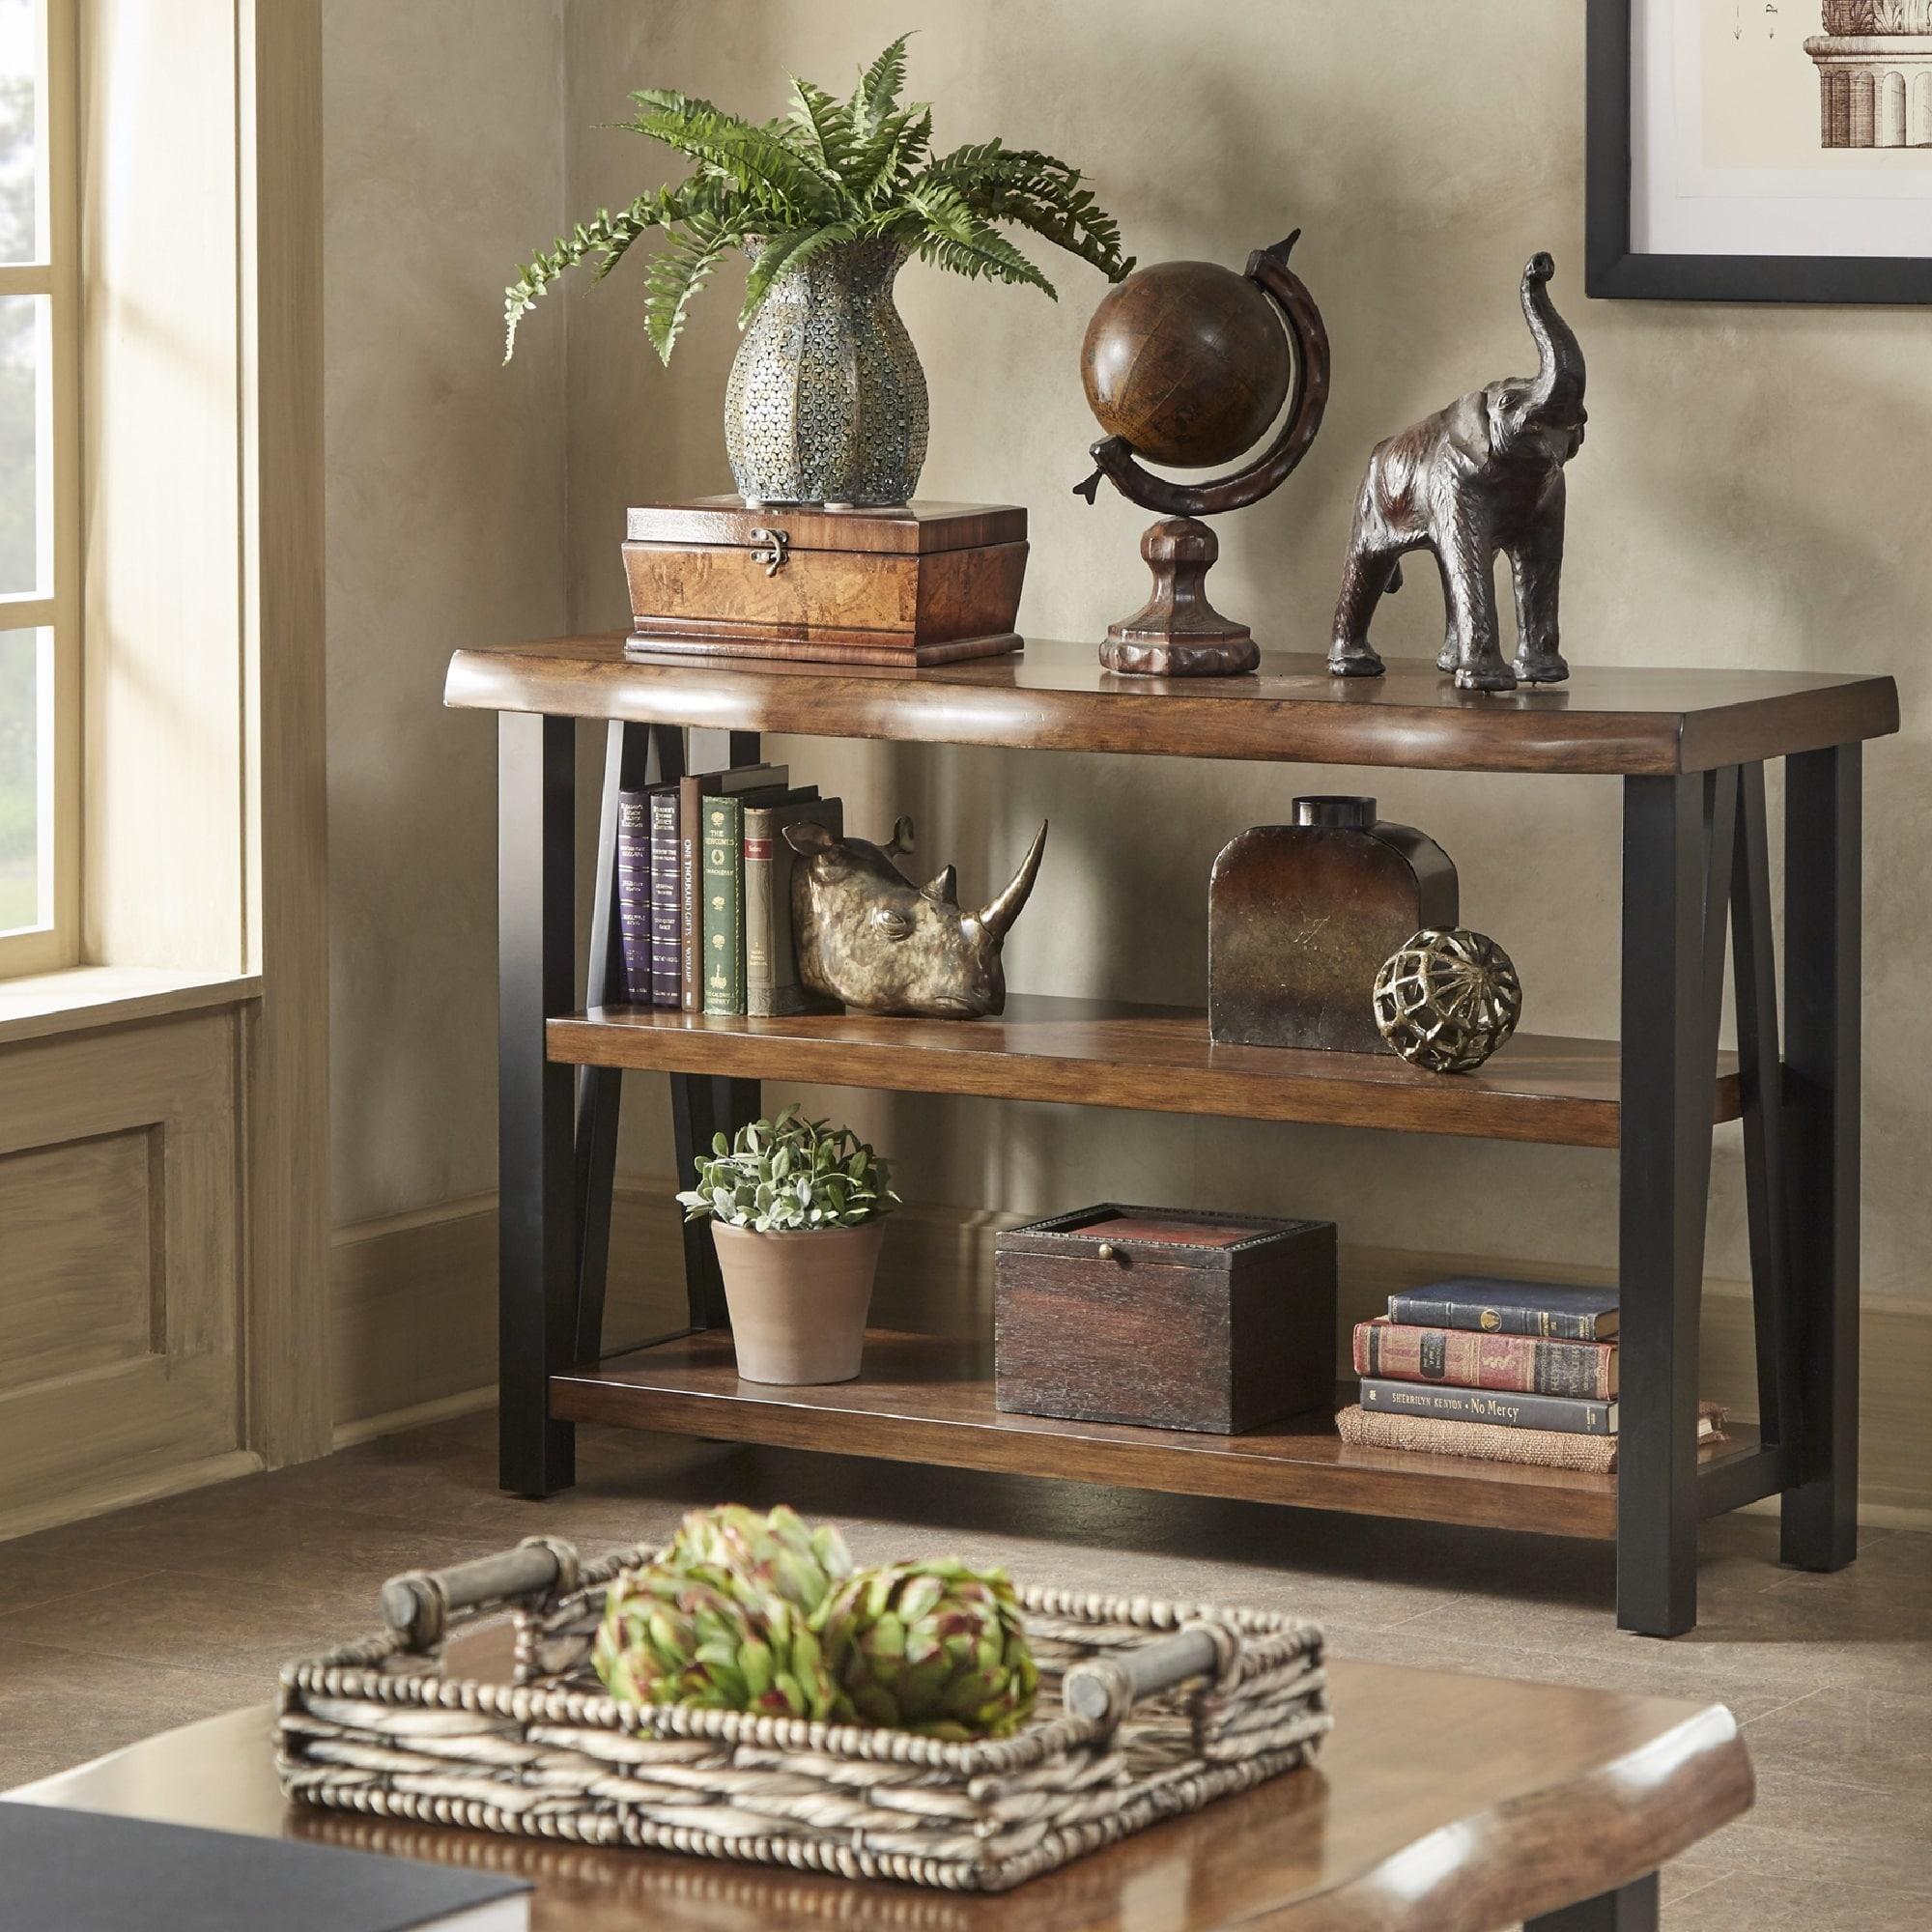 Wood Console Table Sofa Bookshelf Cabin Lodge Rustic Country Home Decor Entryway